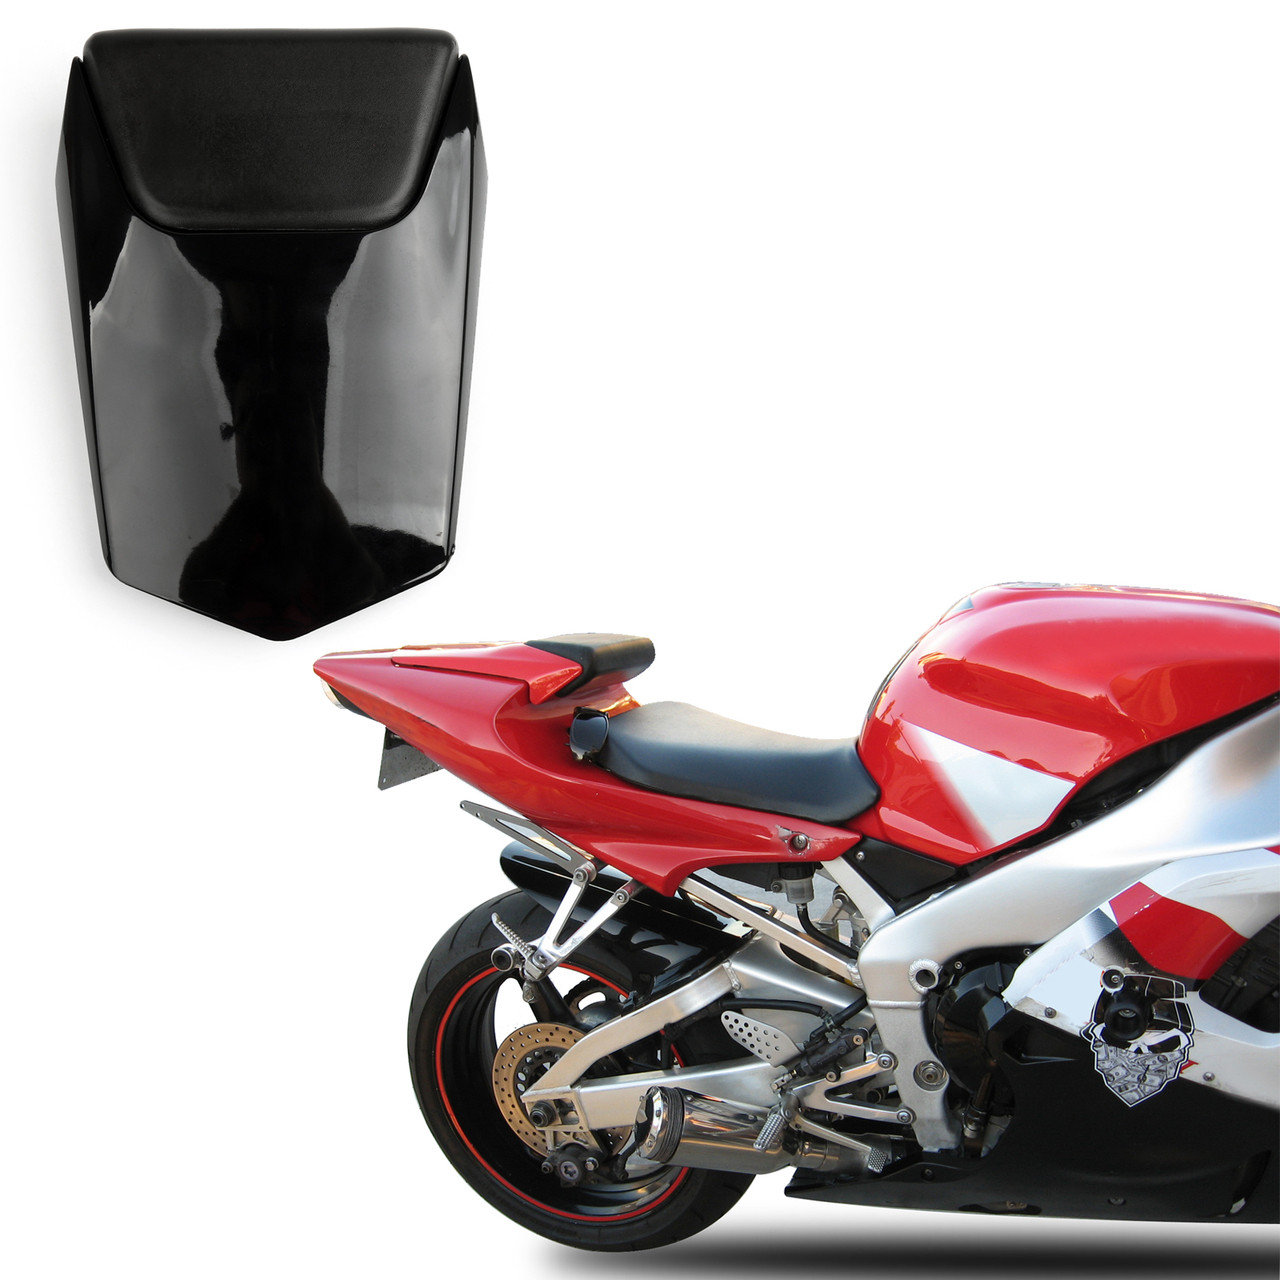 Black Rear Seat Fairing Cover Cowl For Yamaha YZF R6 2003-2005